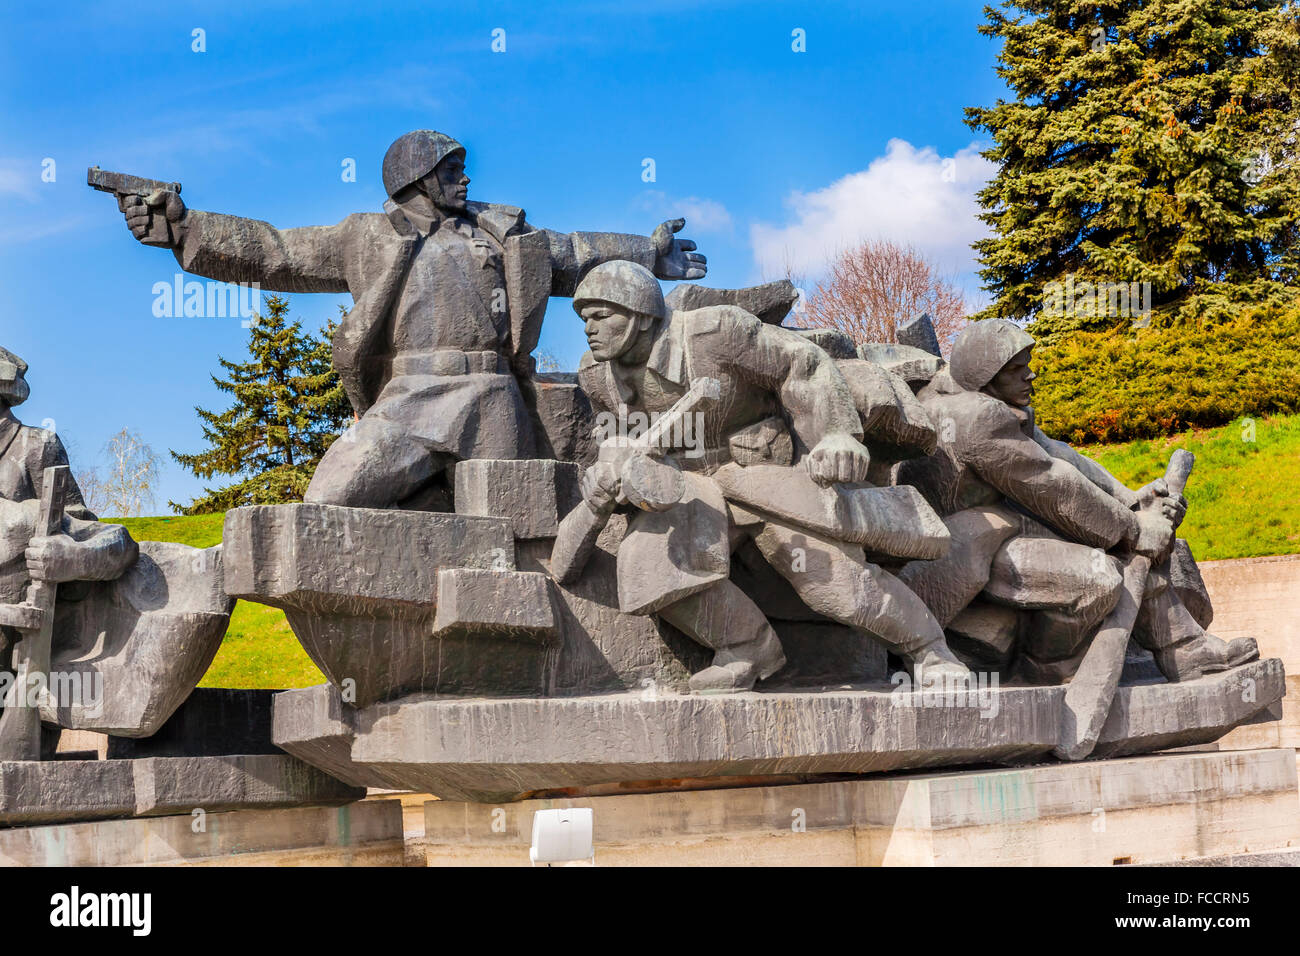 World War 2 Soldiers Stockfotos & World War 2 Soldiers Bilder - Alamy